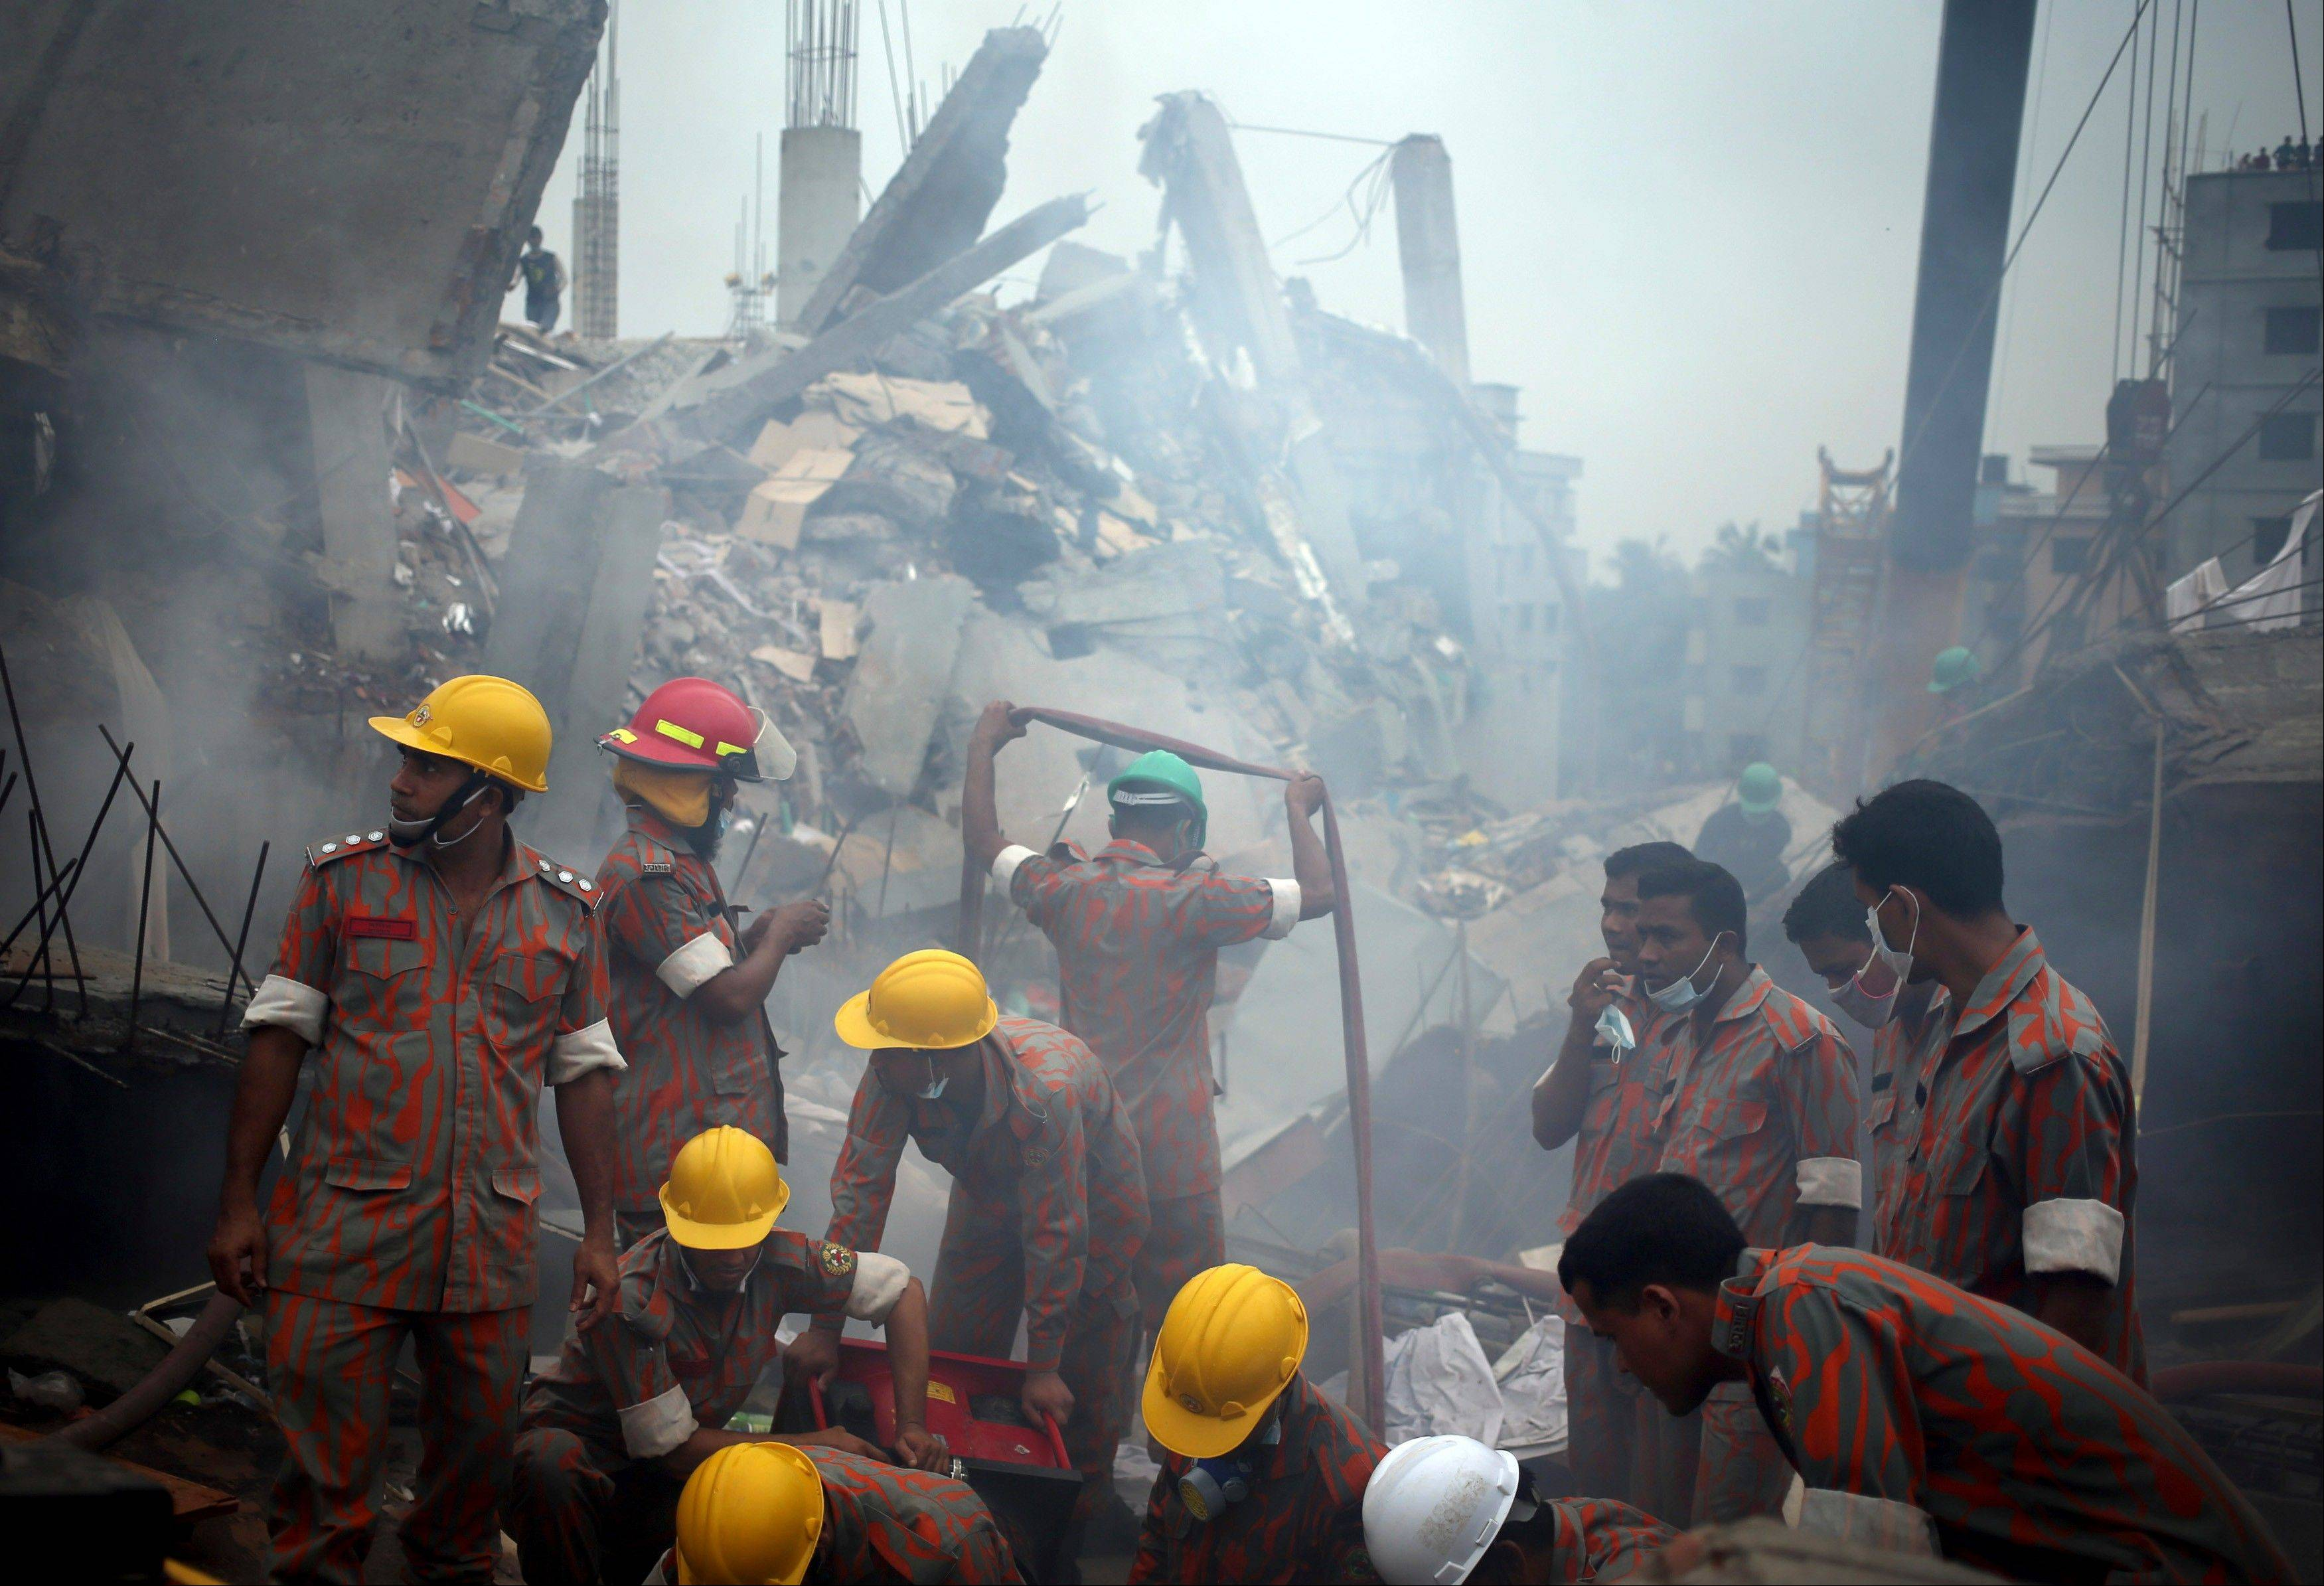 On Monday rescue workers gave up hopes of finding any more survivors in the remains of a building that collapsed five days ago, and began using heavy machinery on Monday to dislodge the rubble and look for bodies � mostly of workers in garment factories there. At least 381 people were killed when the illegally constructed, 8-story Rana Plaza collapsed in a heap on Wednesday morning along with thousands of workers in the five garment factories in the building.